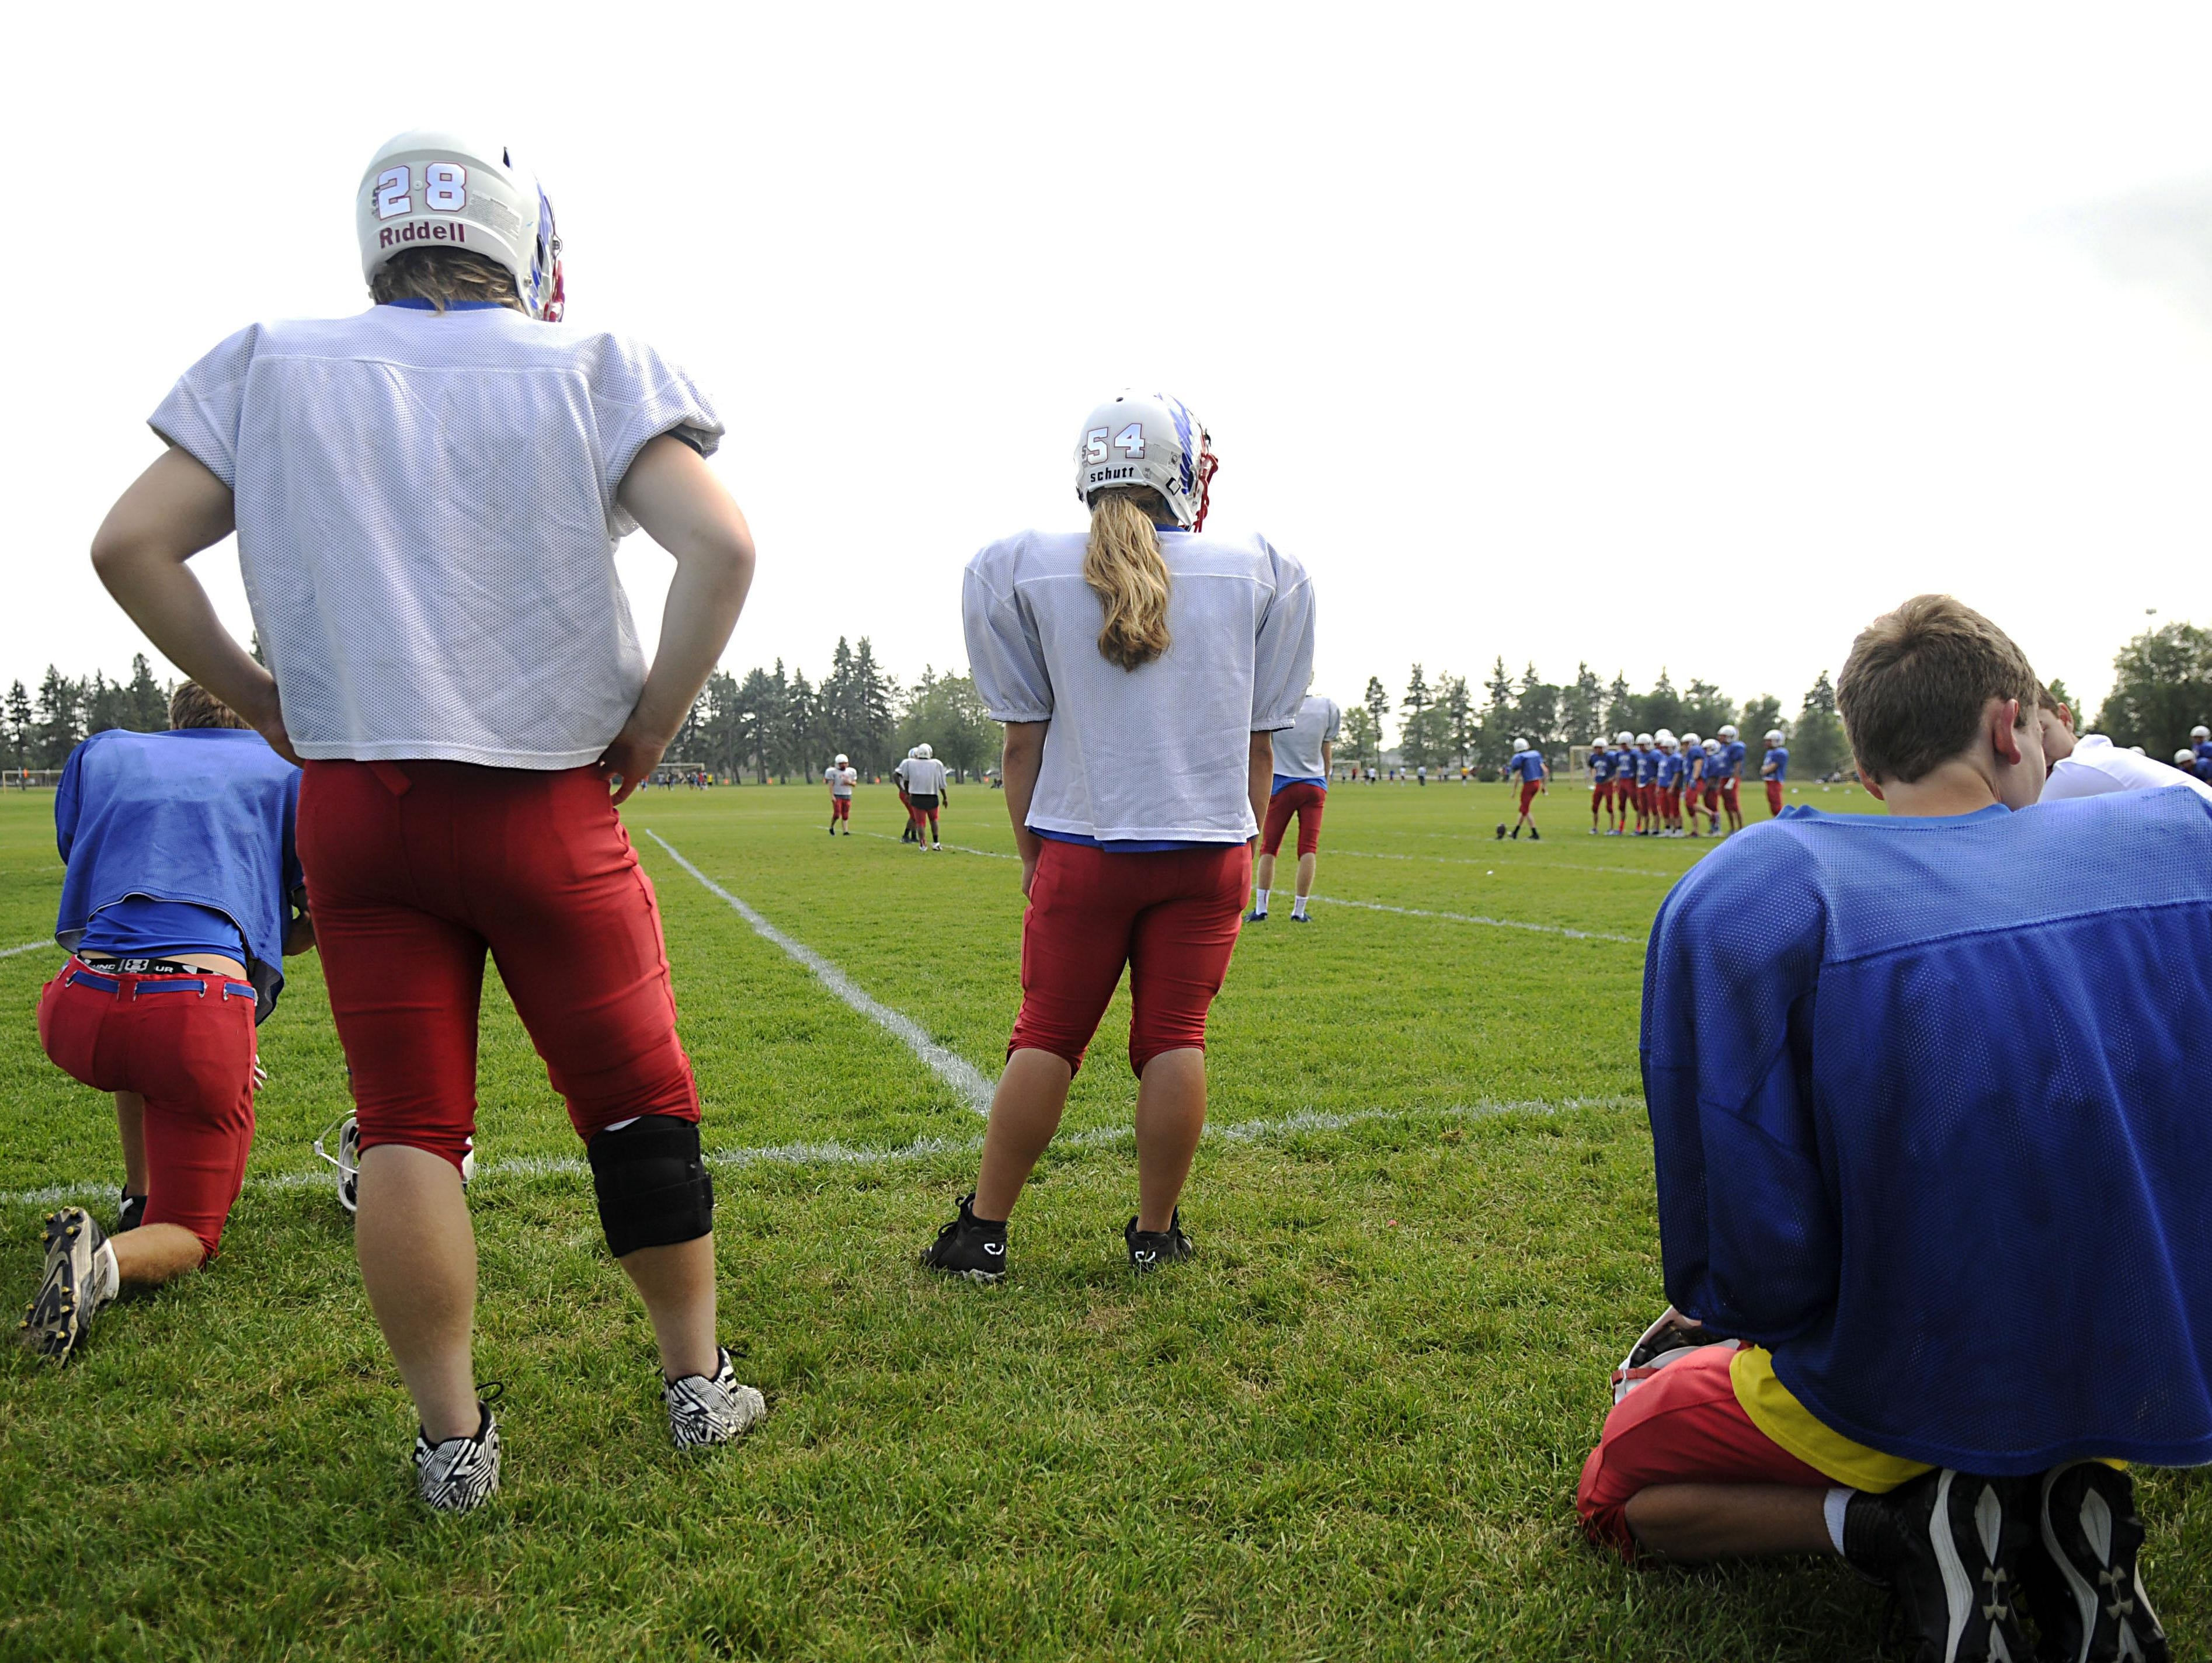 Linebacker Angie Stolt waits to go into the play at practice on Wednesday at Apollo High School.